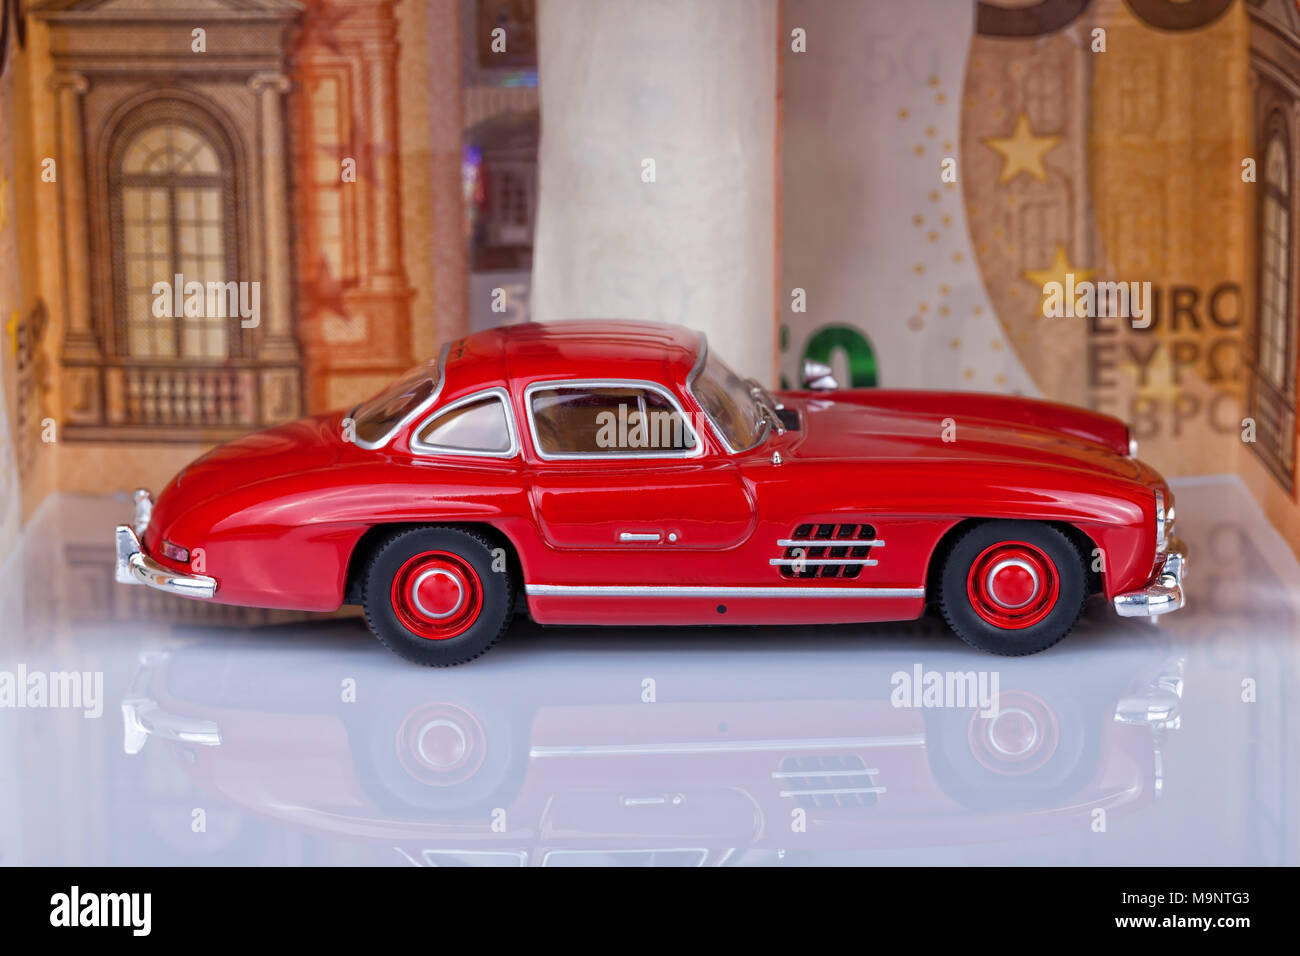 A Classic Sports Car Of The Year 1954 Of Red Color Inside A Garage